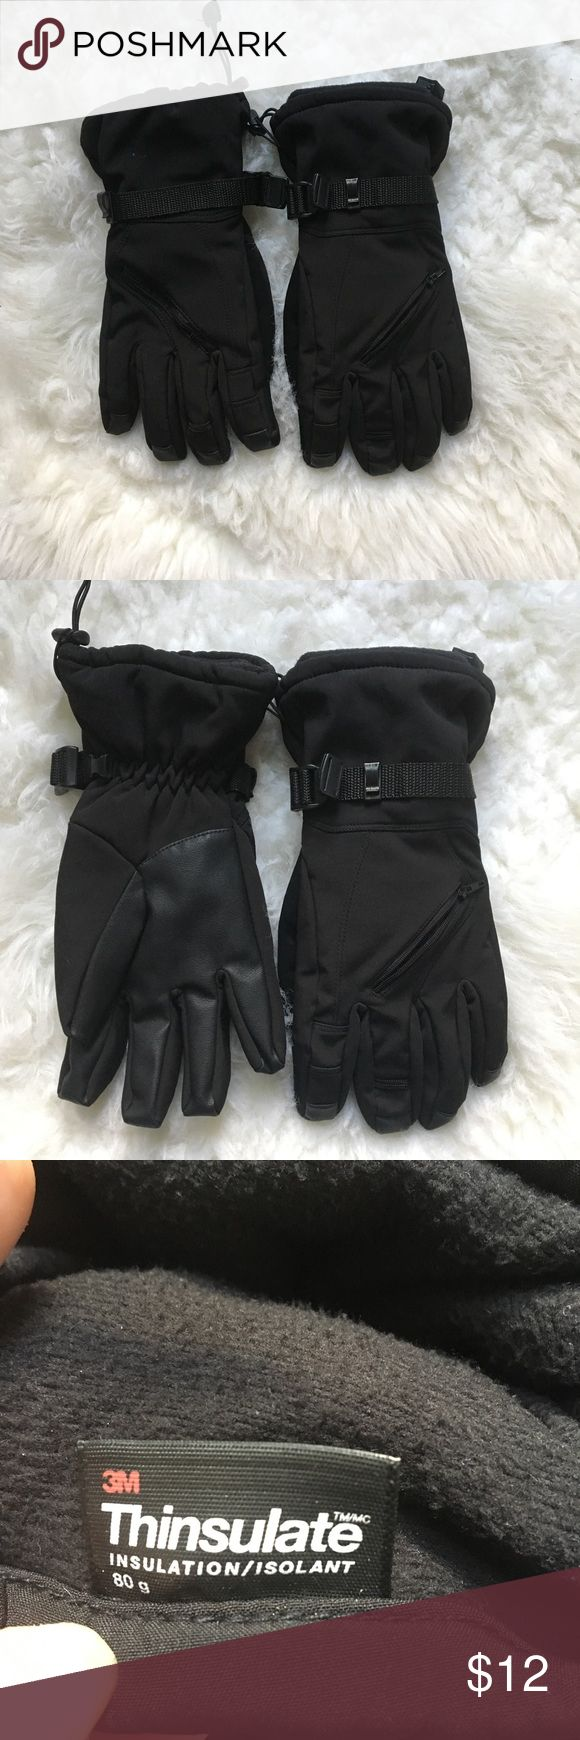 Men's 3M Thinsulate Gloves Men's 3M Thinsulate Insulated Gloves, Size M/L, color Black, has small pockets, has an adjustable strap. 3M Other